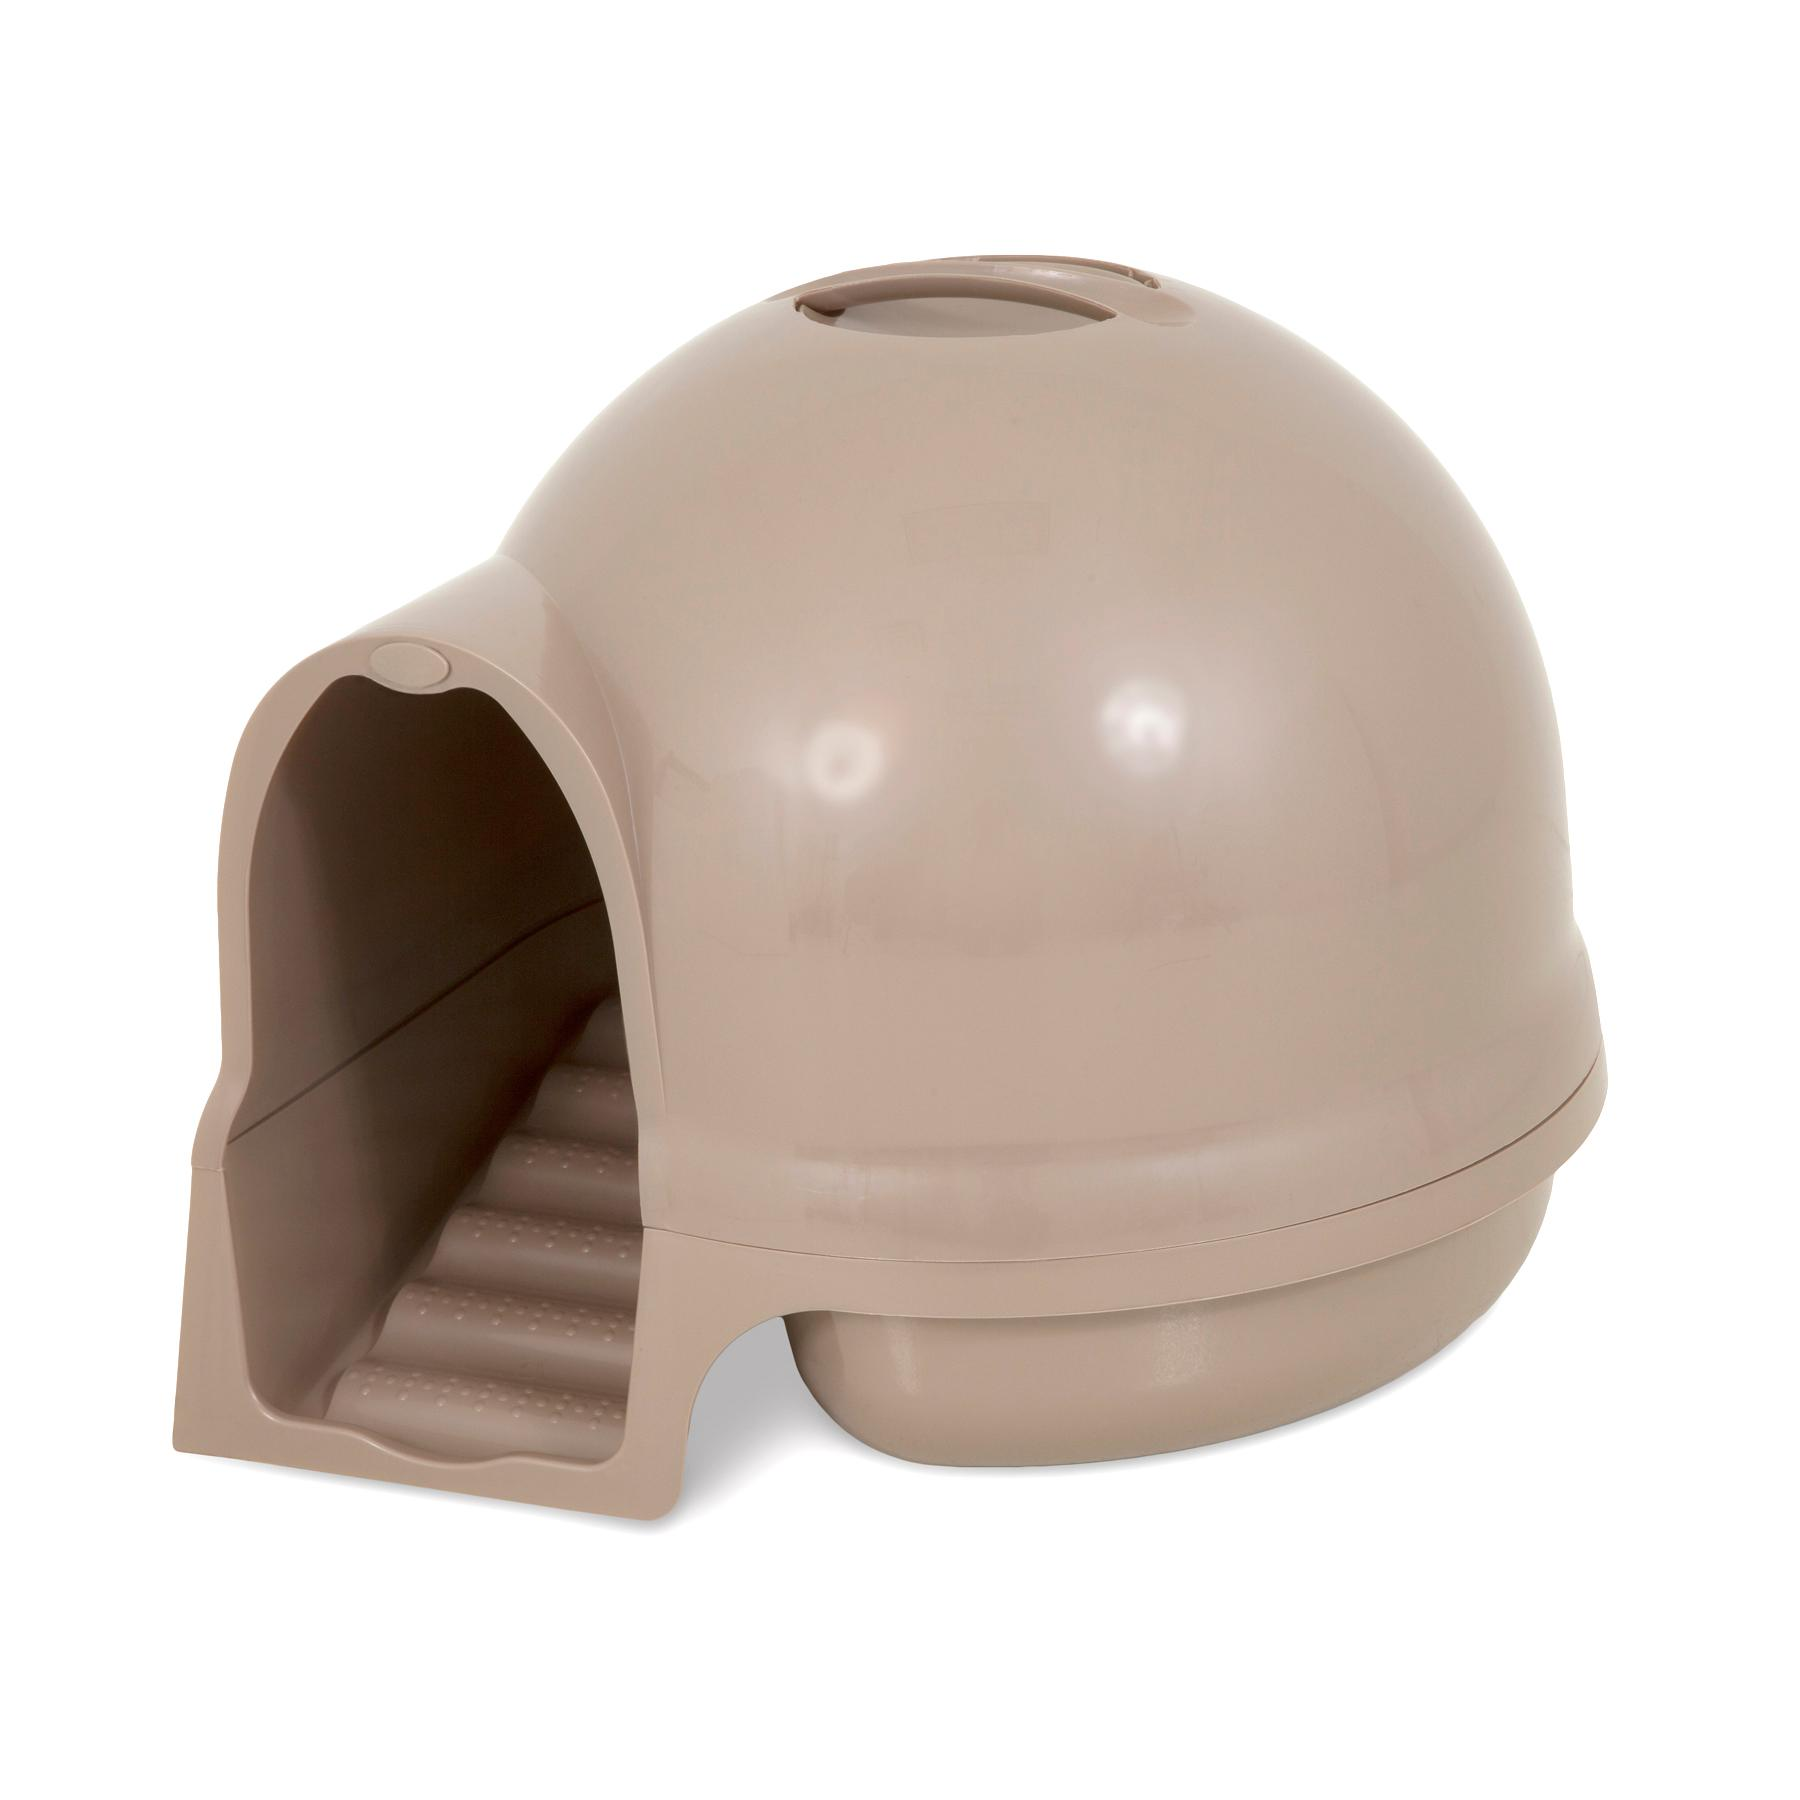 booda dome cleanstep cat box white pet supplies. Black Bedroom Furniture Sets. Home Design Ideas